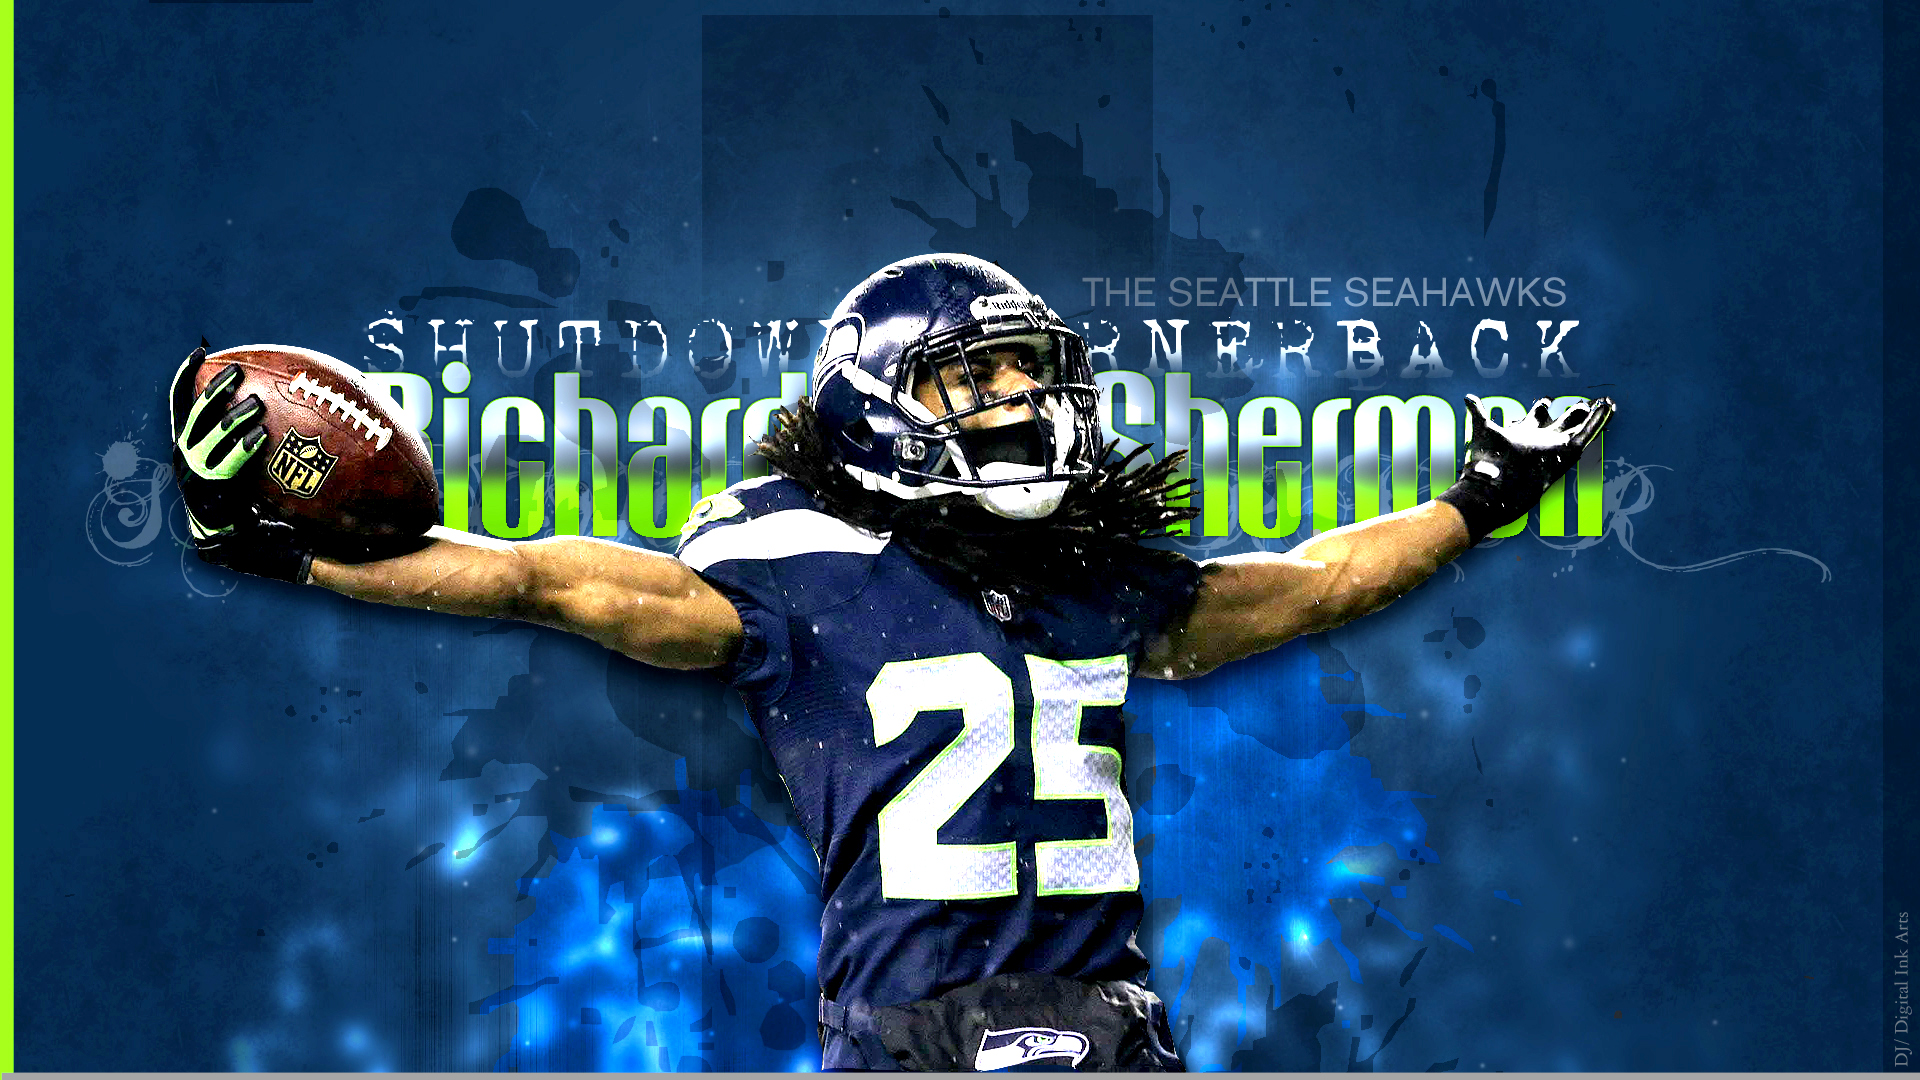 Seahawks Logo Wallpaper Images Wallpaper WallpaperLepi 1920x1080